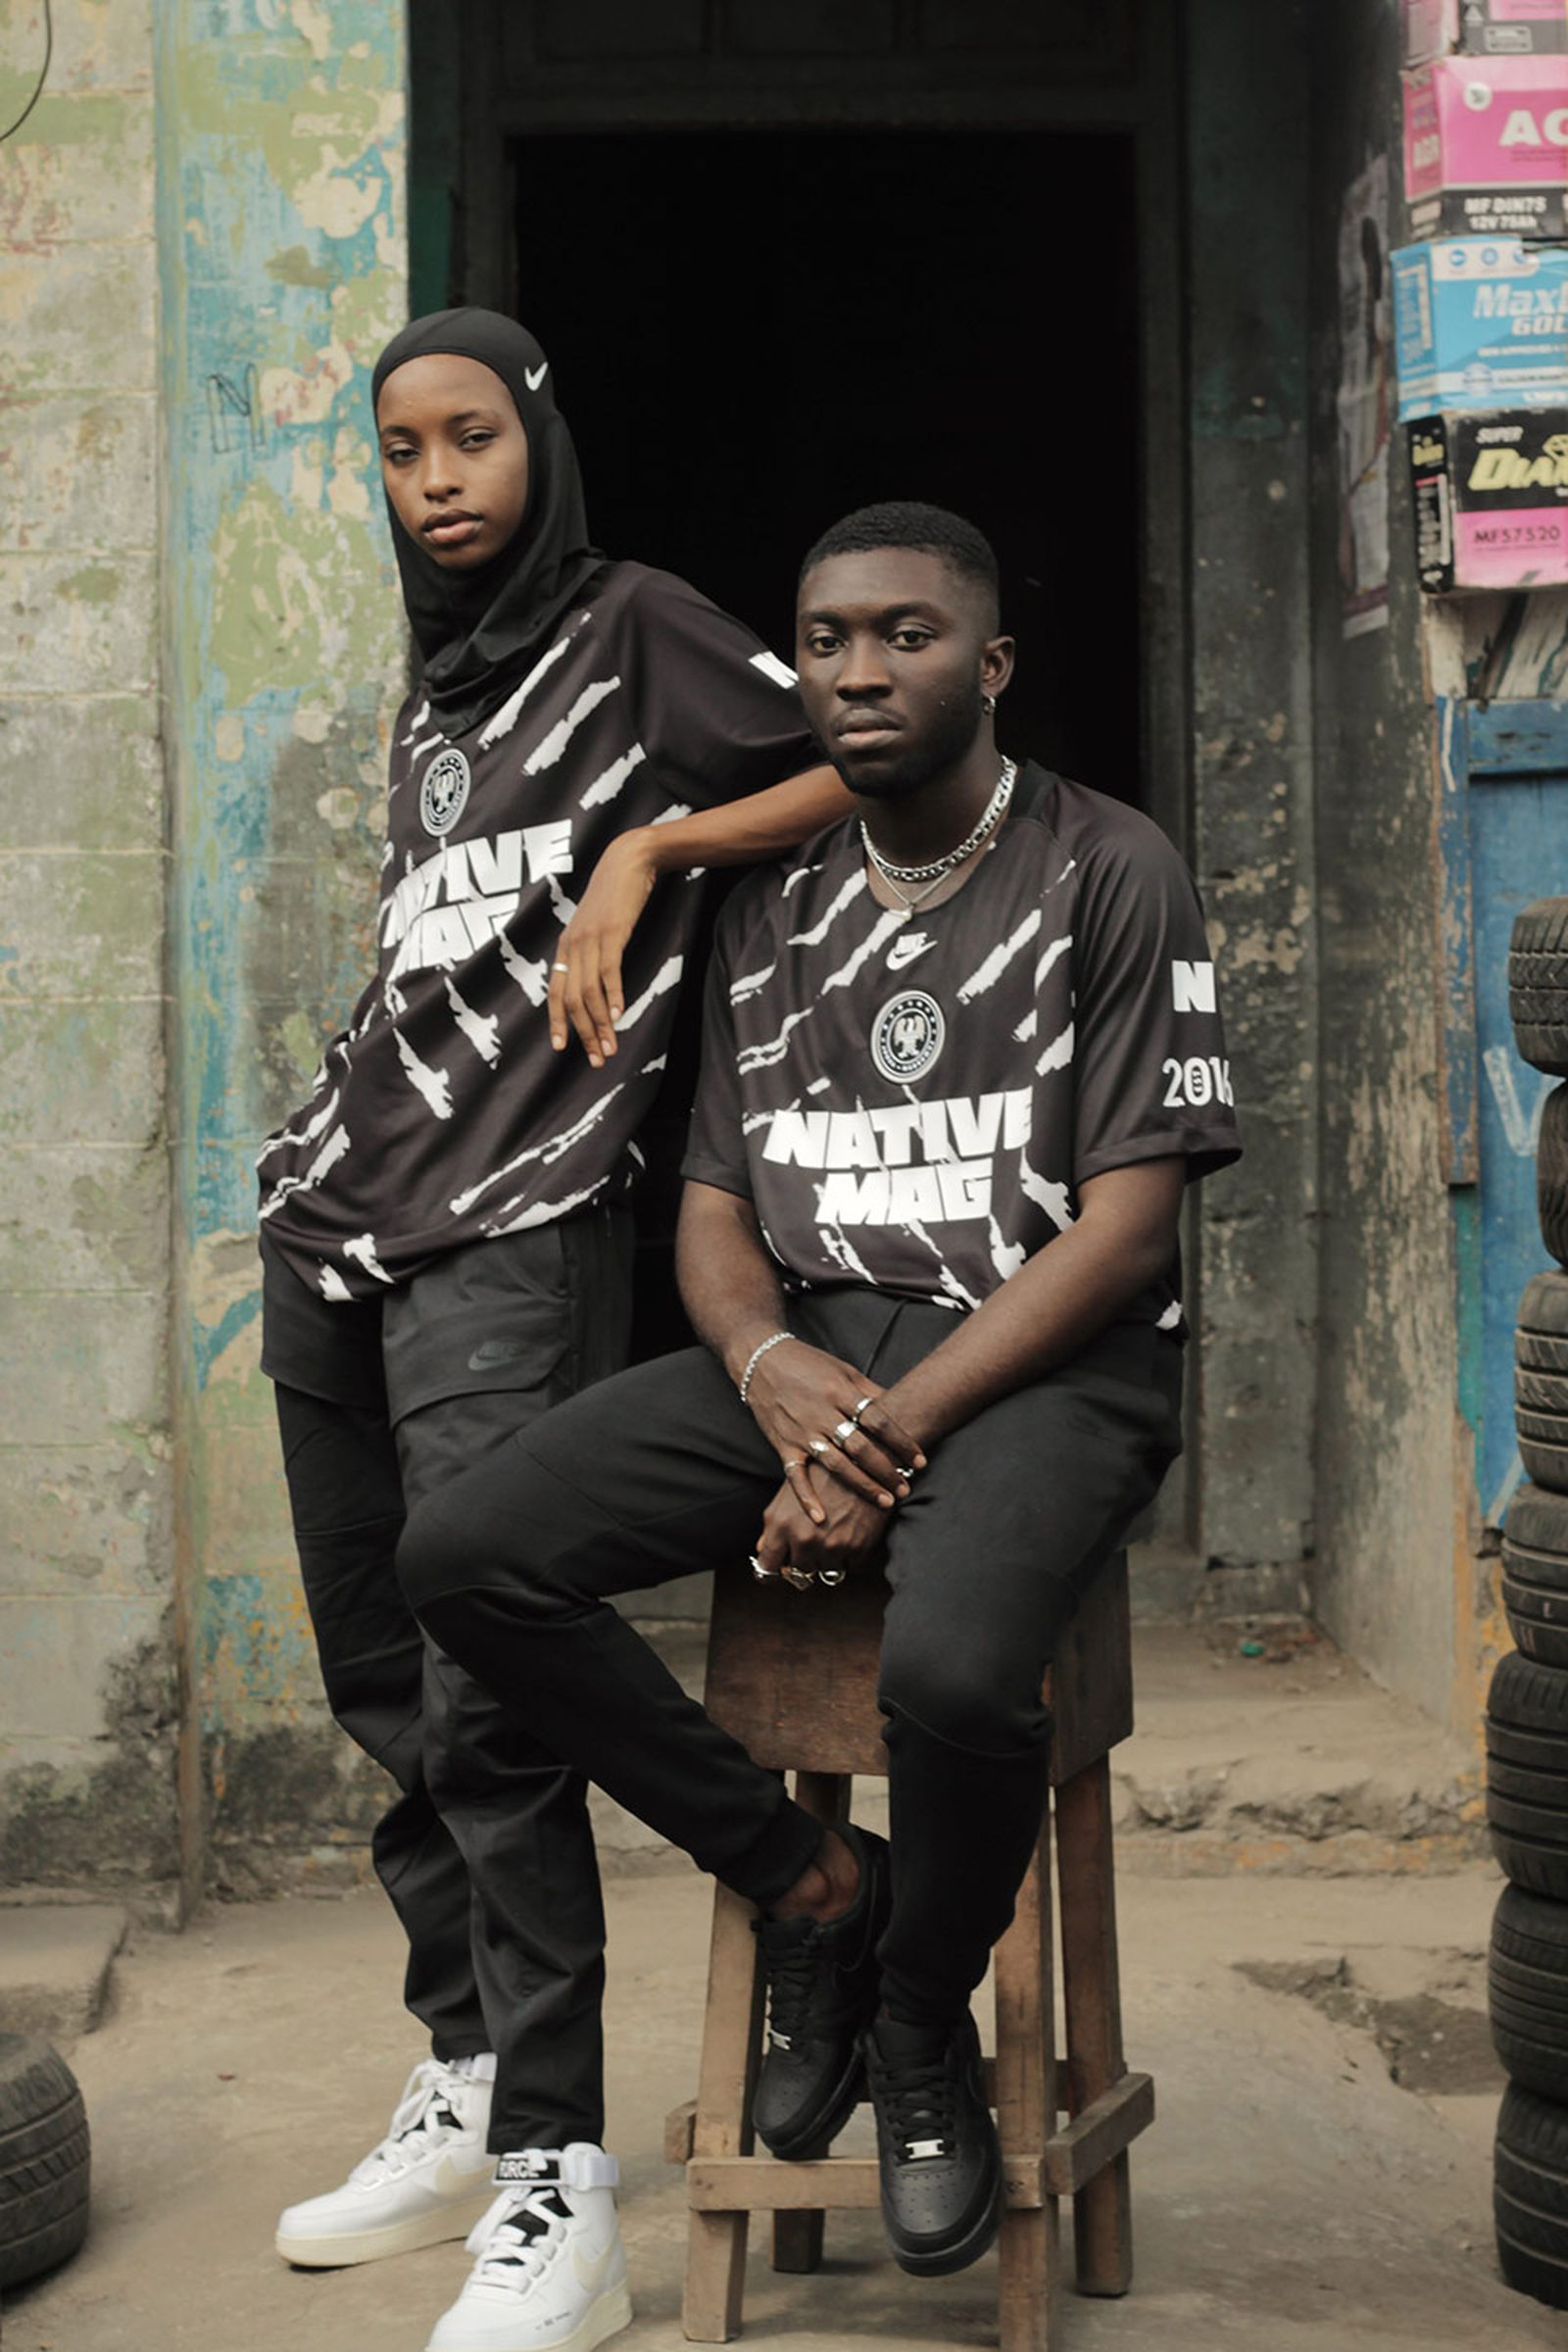 nike the native football jersey buy here